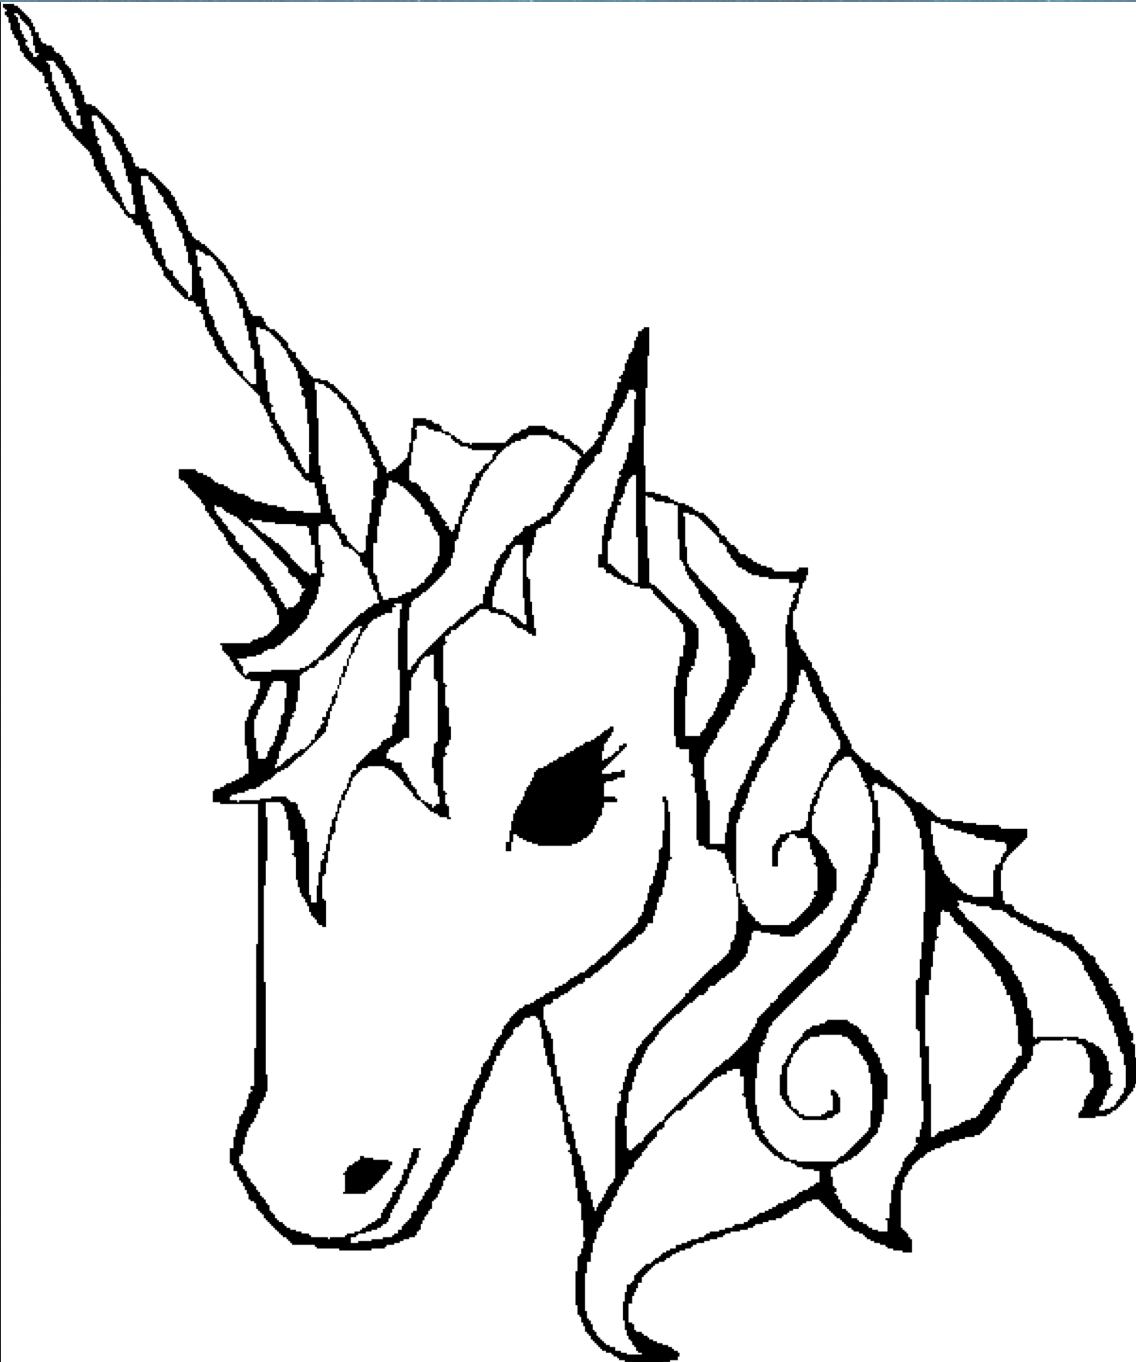 Unicorn Coloring Pages Adults Unicorn Pictures To Color Unicorn Pictures Unicorn Coloring Pages